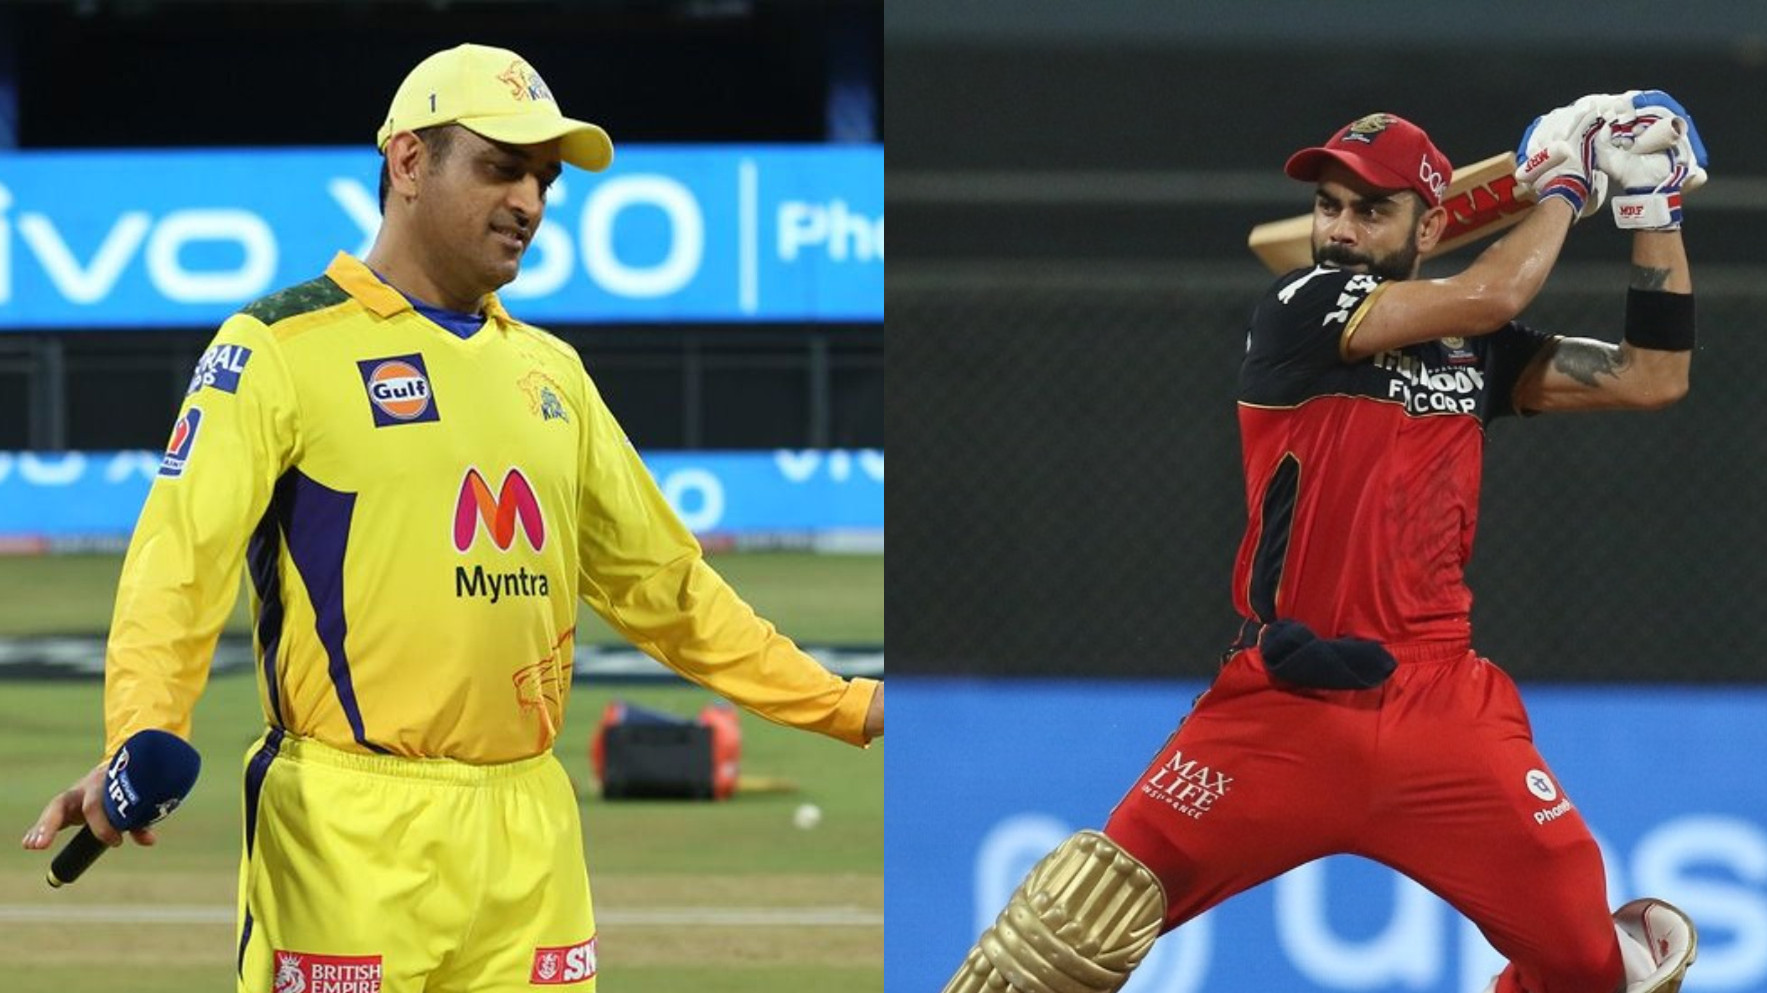 IPL 2021: Match 19, CSK v RCB - COC Predicted Playing XIs